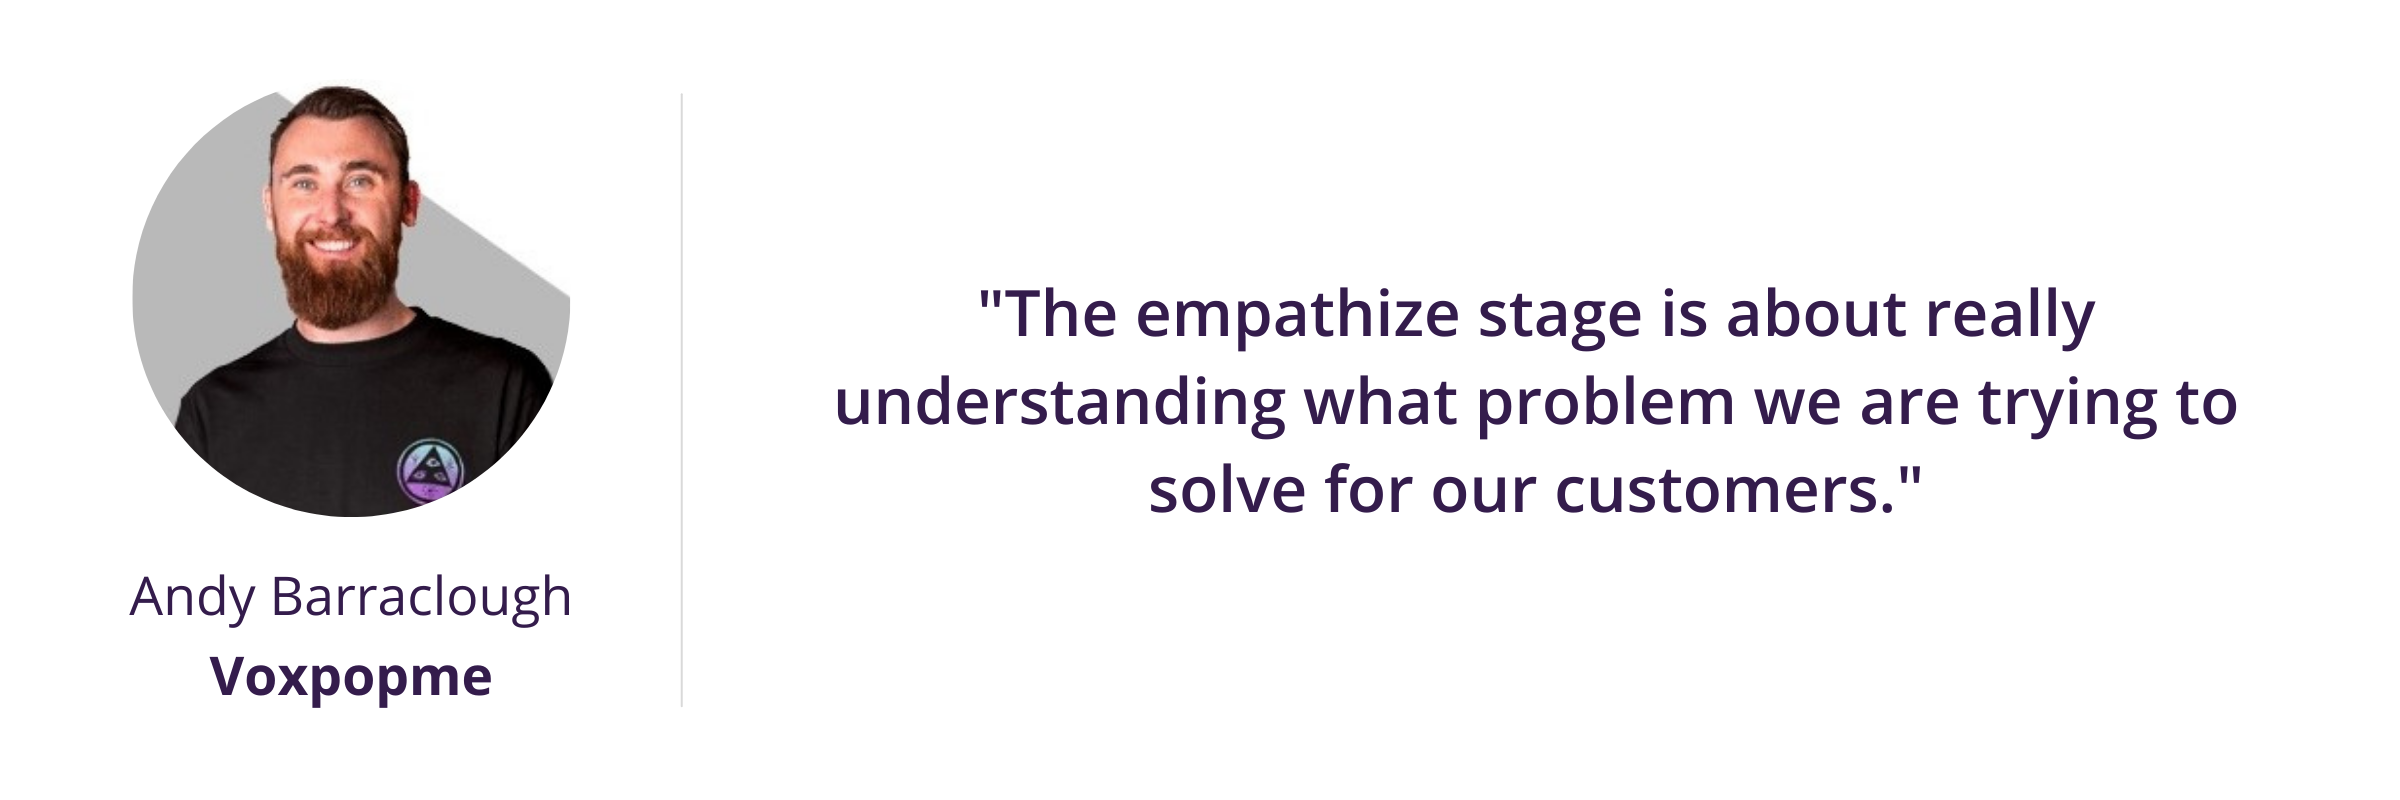 """""""The empathize stage is about really understanding what problem we are trying to solve for our customers."""""""